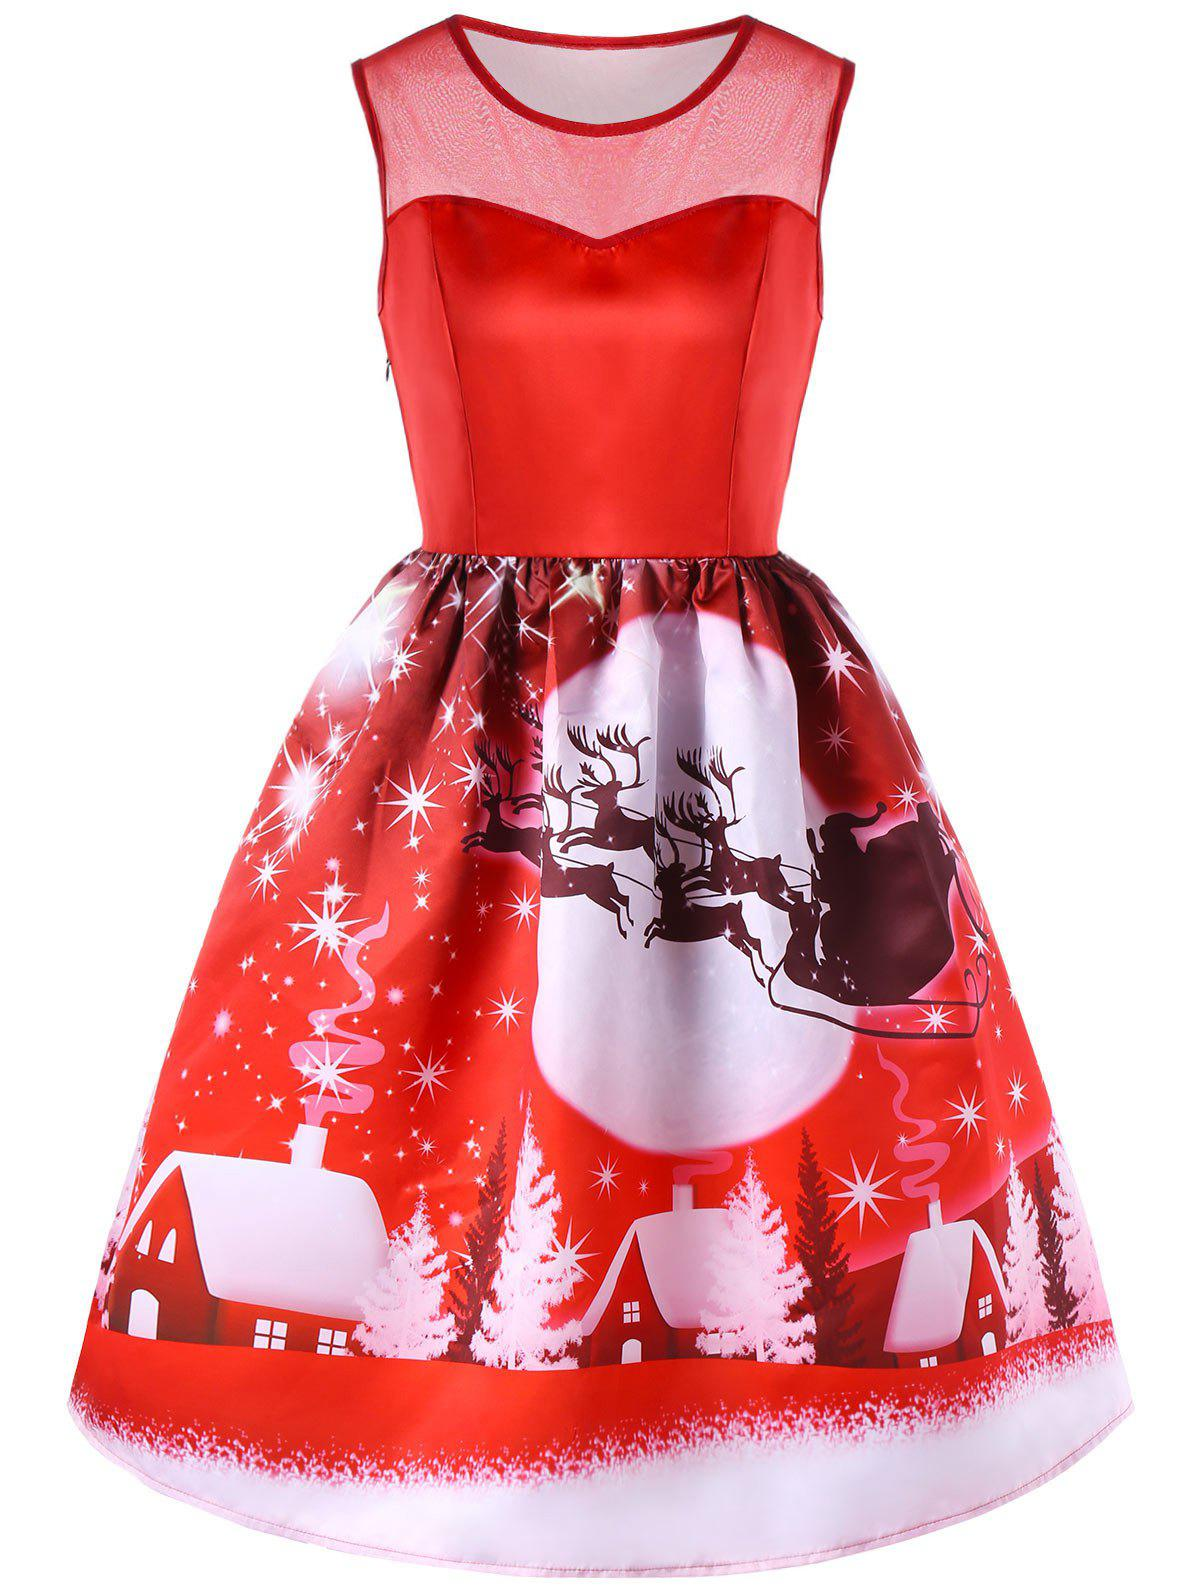 Christmas Printed Mesh Insert Sleeveless DressWOMEN<br><br>Size: M; Color: RED; Style: Vintage; Material: Polyester; Silhouette: Fit and Flare; Dresses Length: Mid-Calf; Neckline: Round Collar; Sleeve Length: Sleeveless; Pattern Type: Print; With Belt: No; Season: Fall,Spring; Weight: 0.3520kg; Package Contents: 1 x Dress;